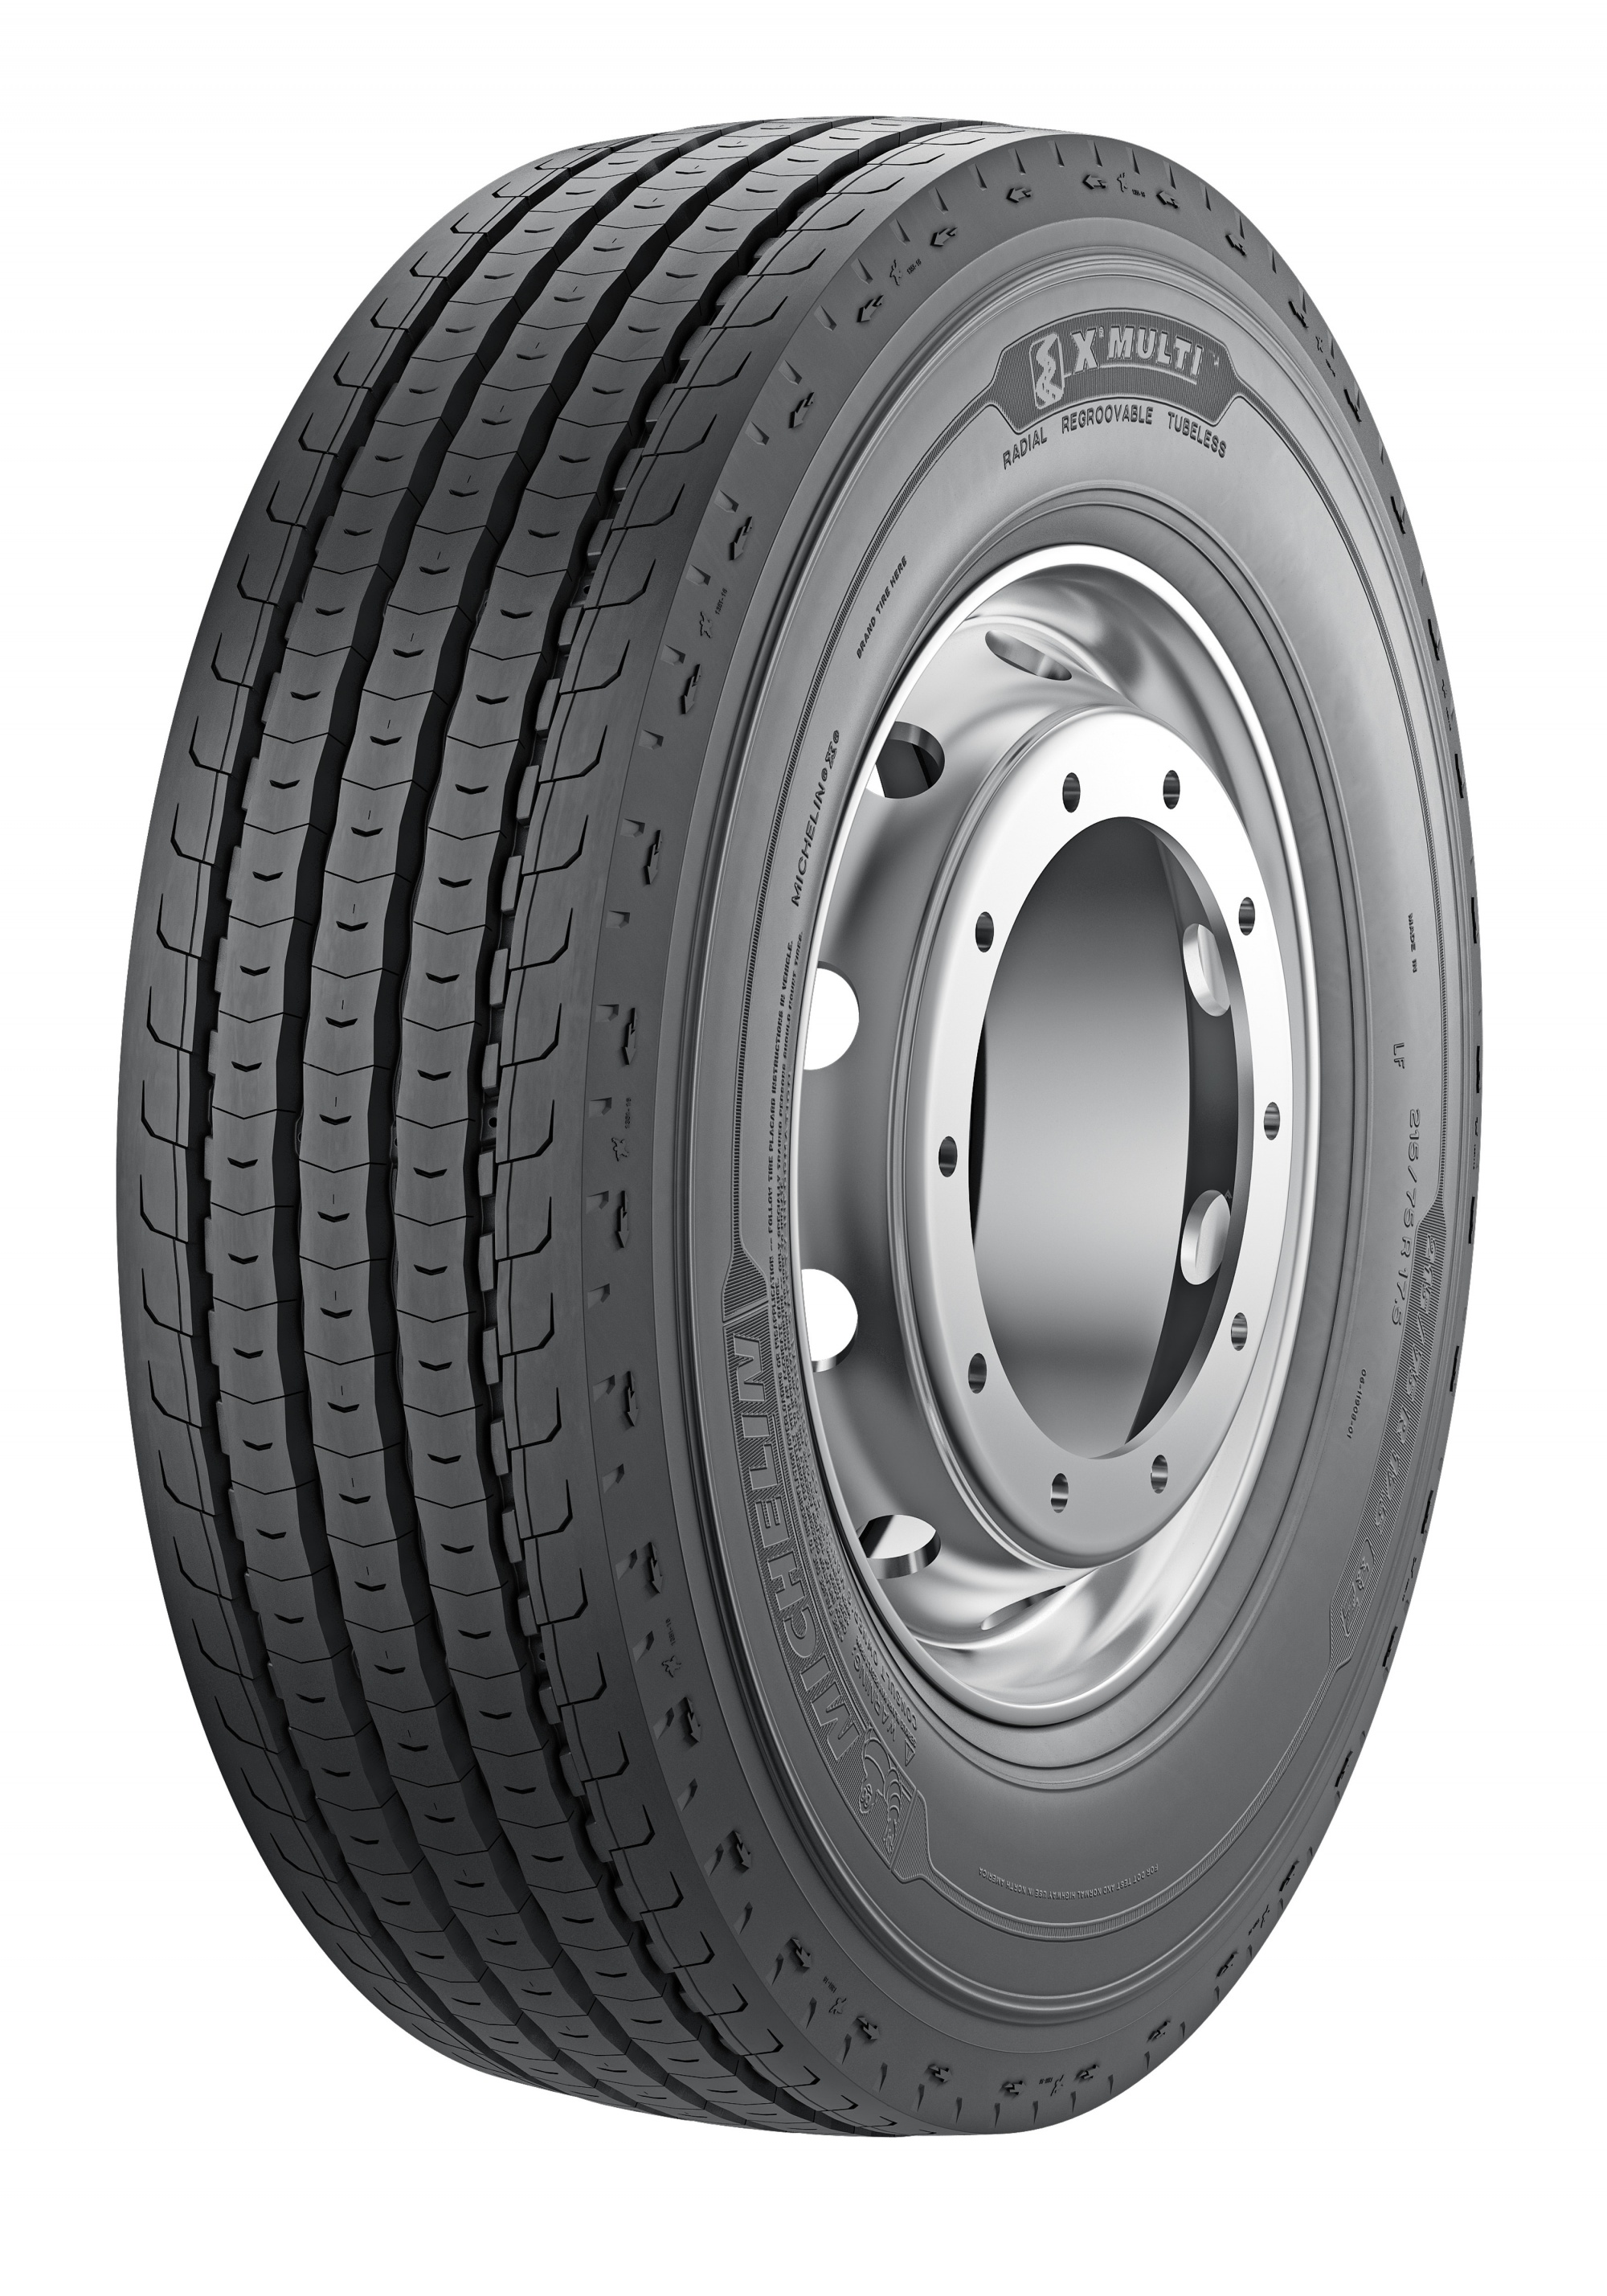 Автошина 245/70 R17.5 Michelin X Multi Z 136/134M TBL универс.